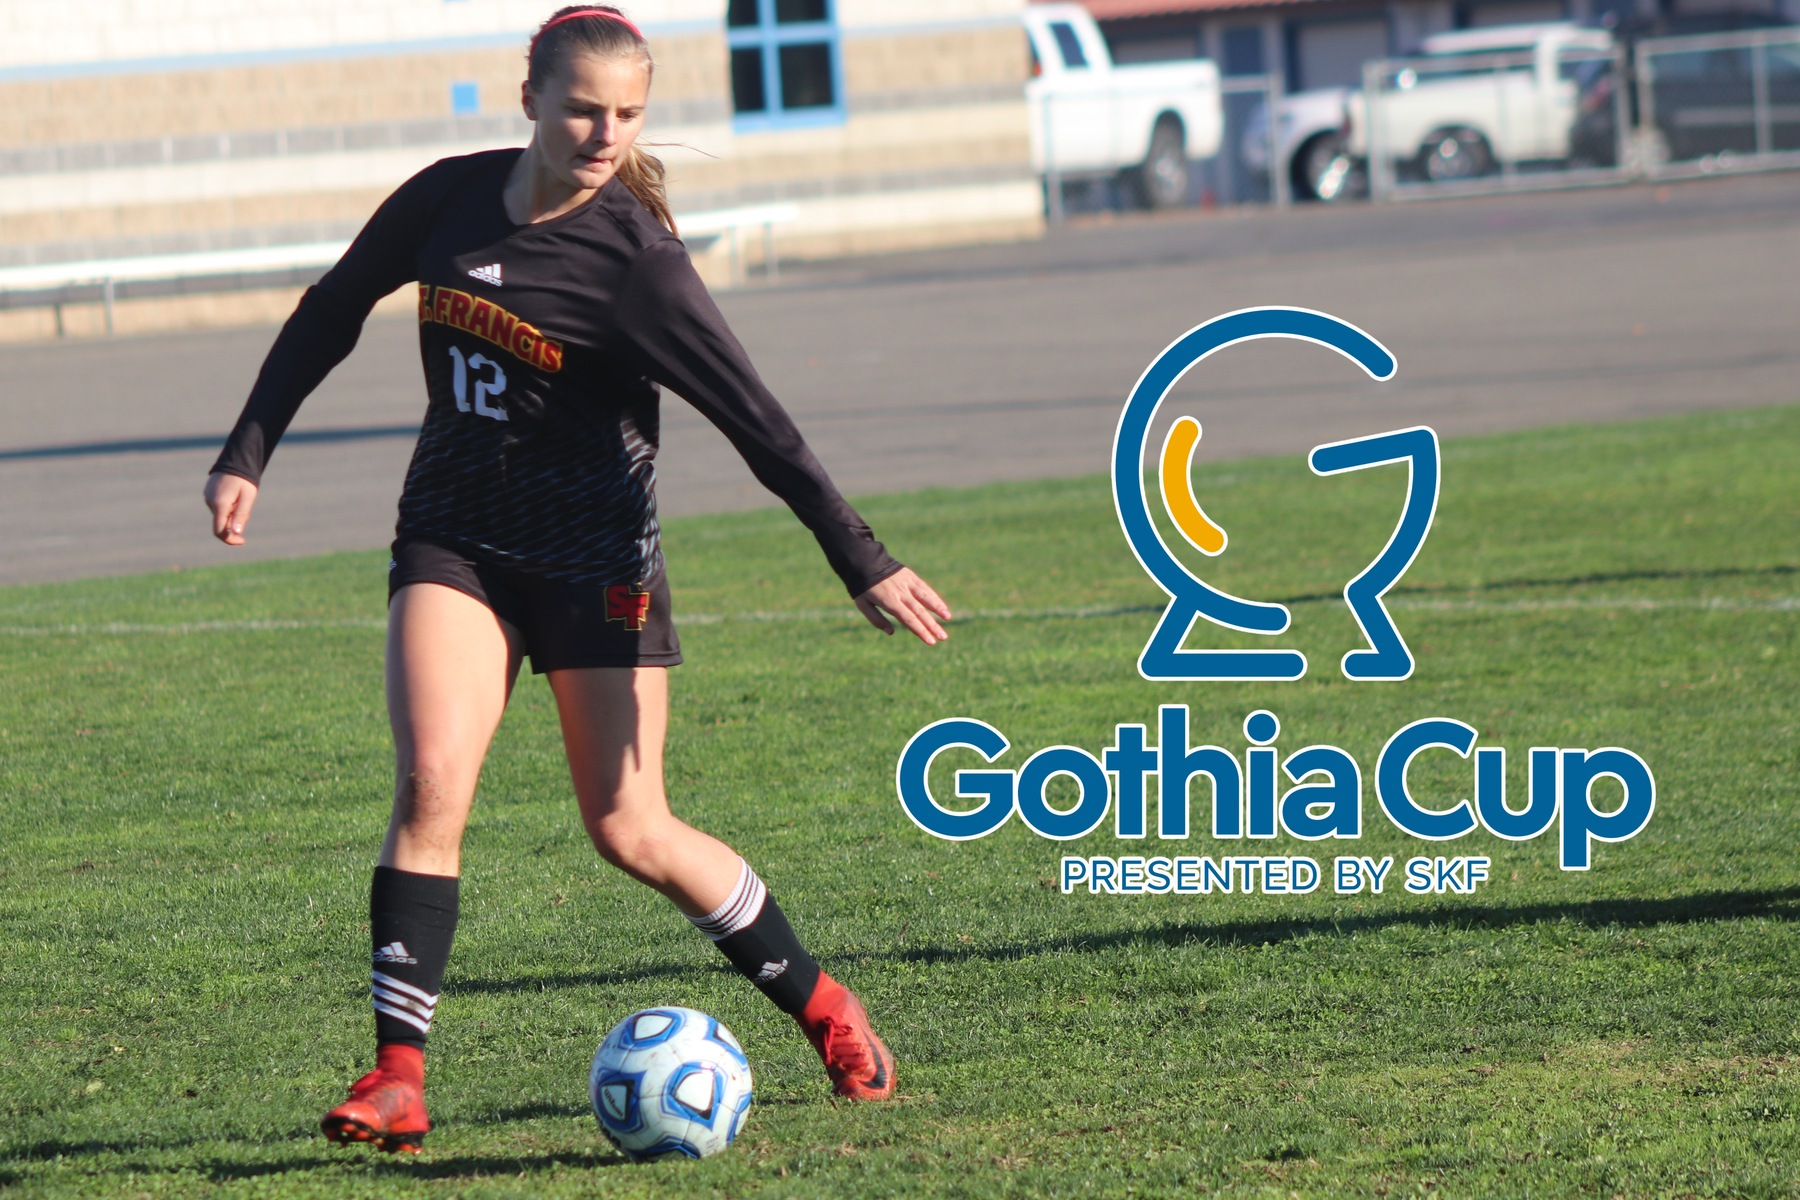 Soccer's Taylor Earle to Play in Gothia Cup in Sweden